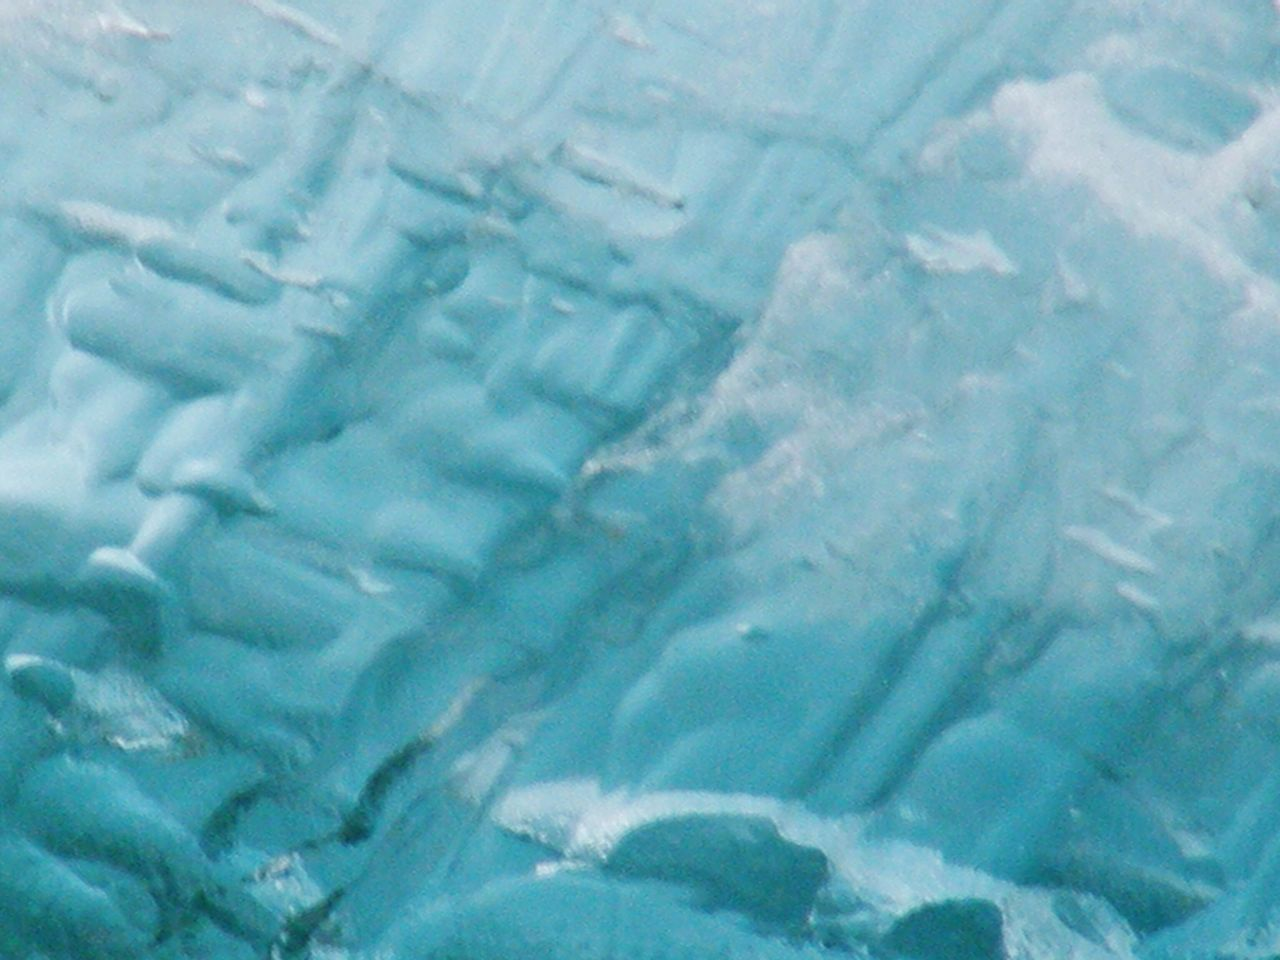 Snow Sports Backgrounds Full Frame Pattern Textured  Close-up Water Nature No People High Angle View Abstract Day Outdoors Glacier Crevasse Snow Sports Pattern Pieces